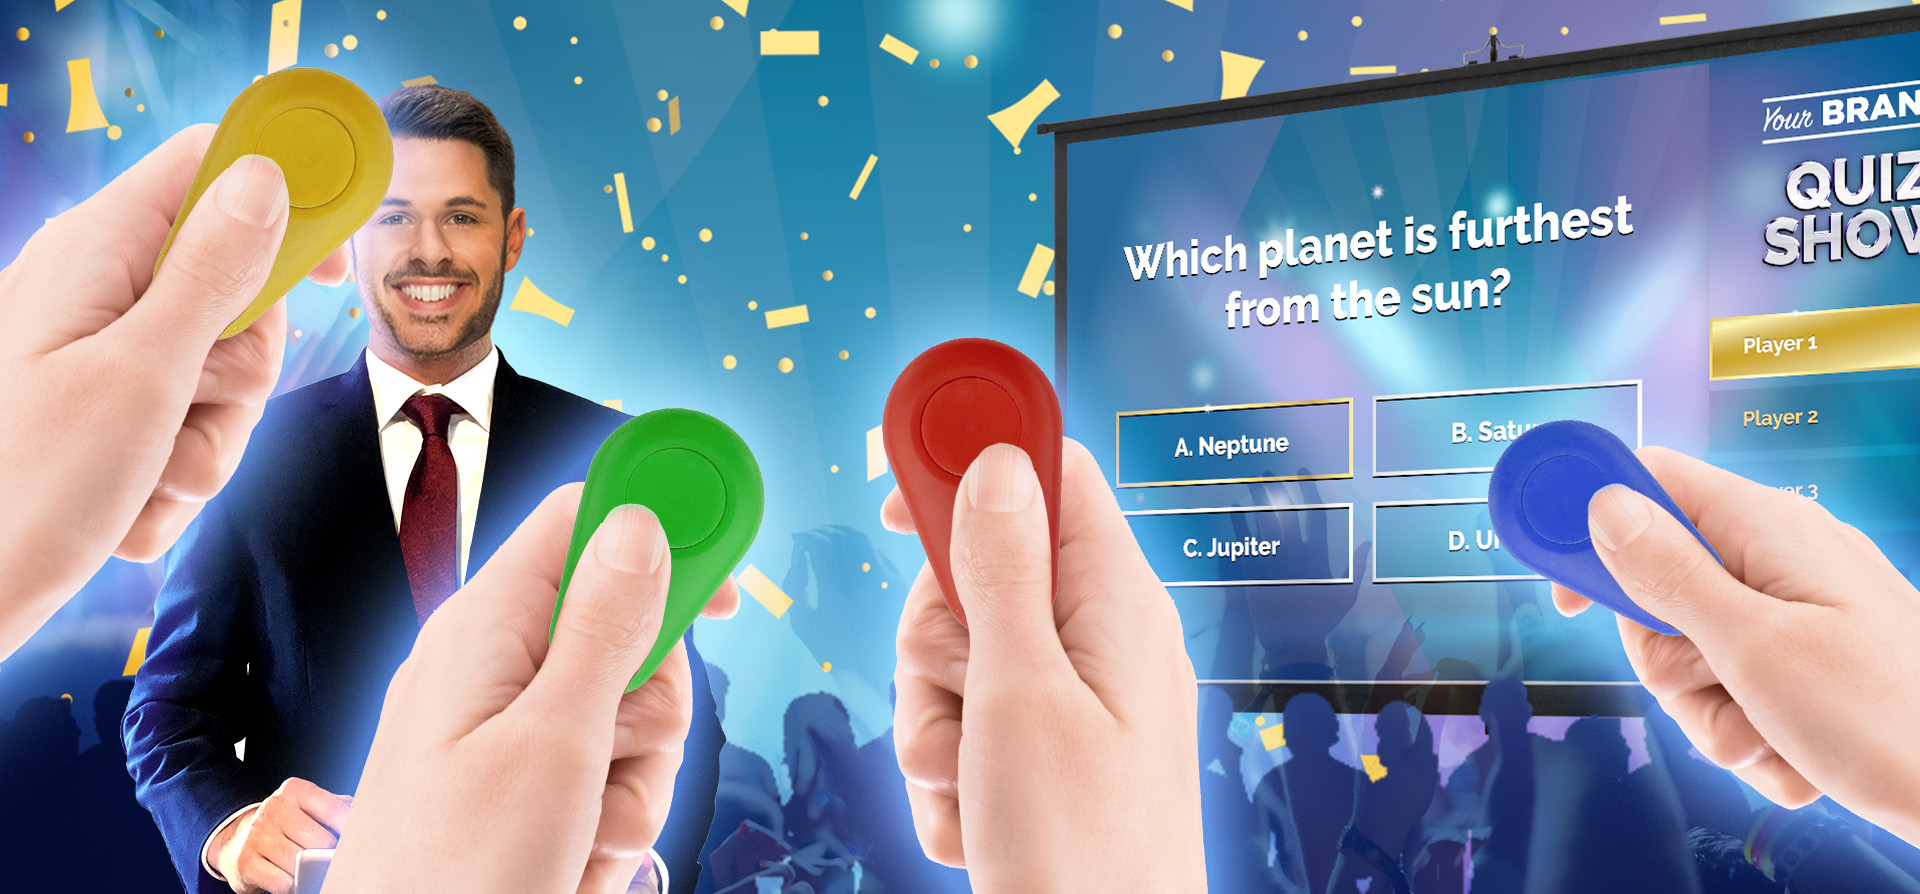 customisable_activation_game_developer_sydney_quiz_show_bluetooth_buzzer_ios_screen_multiplayer_16